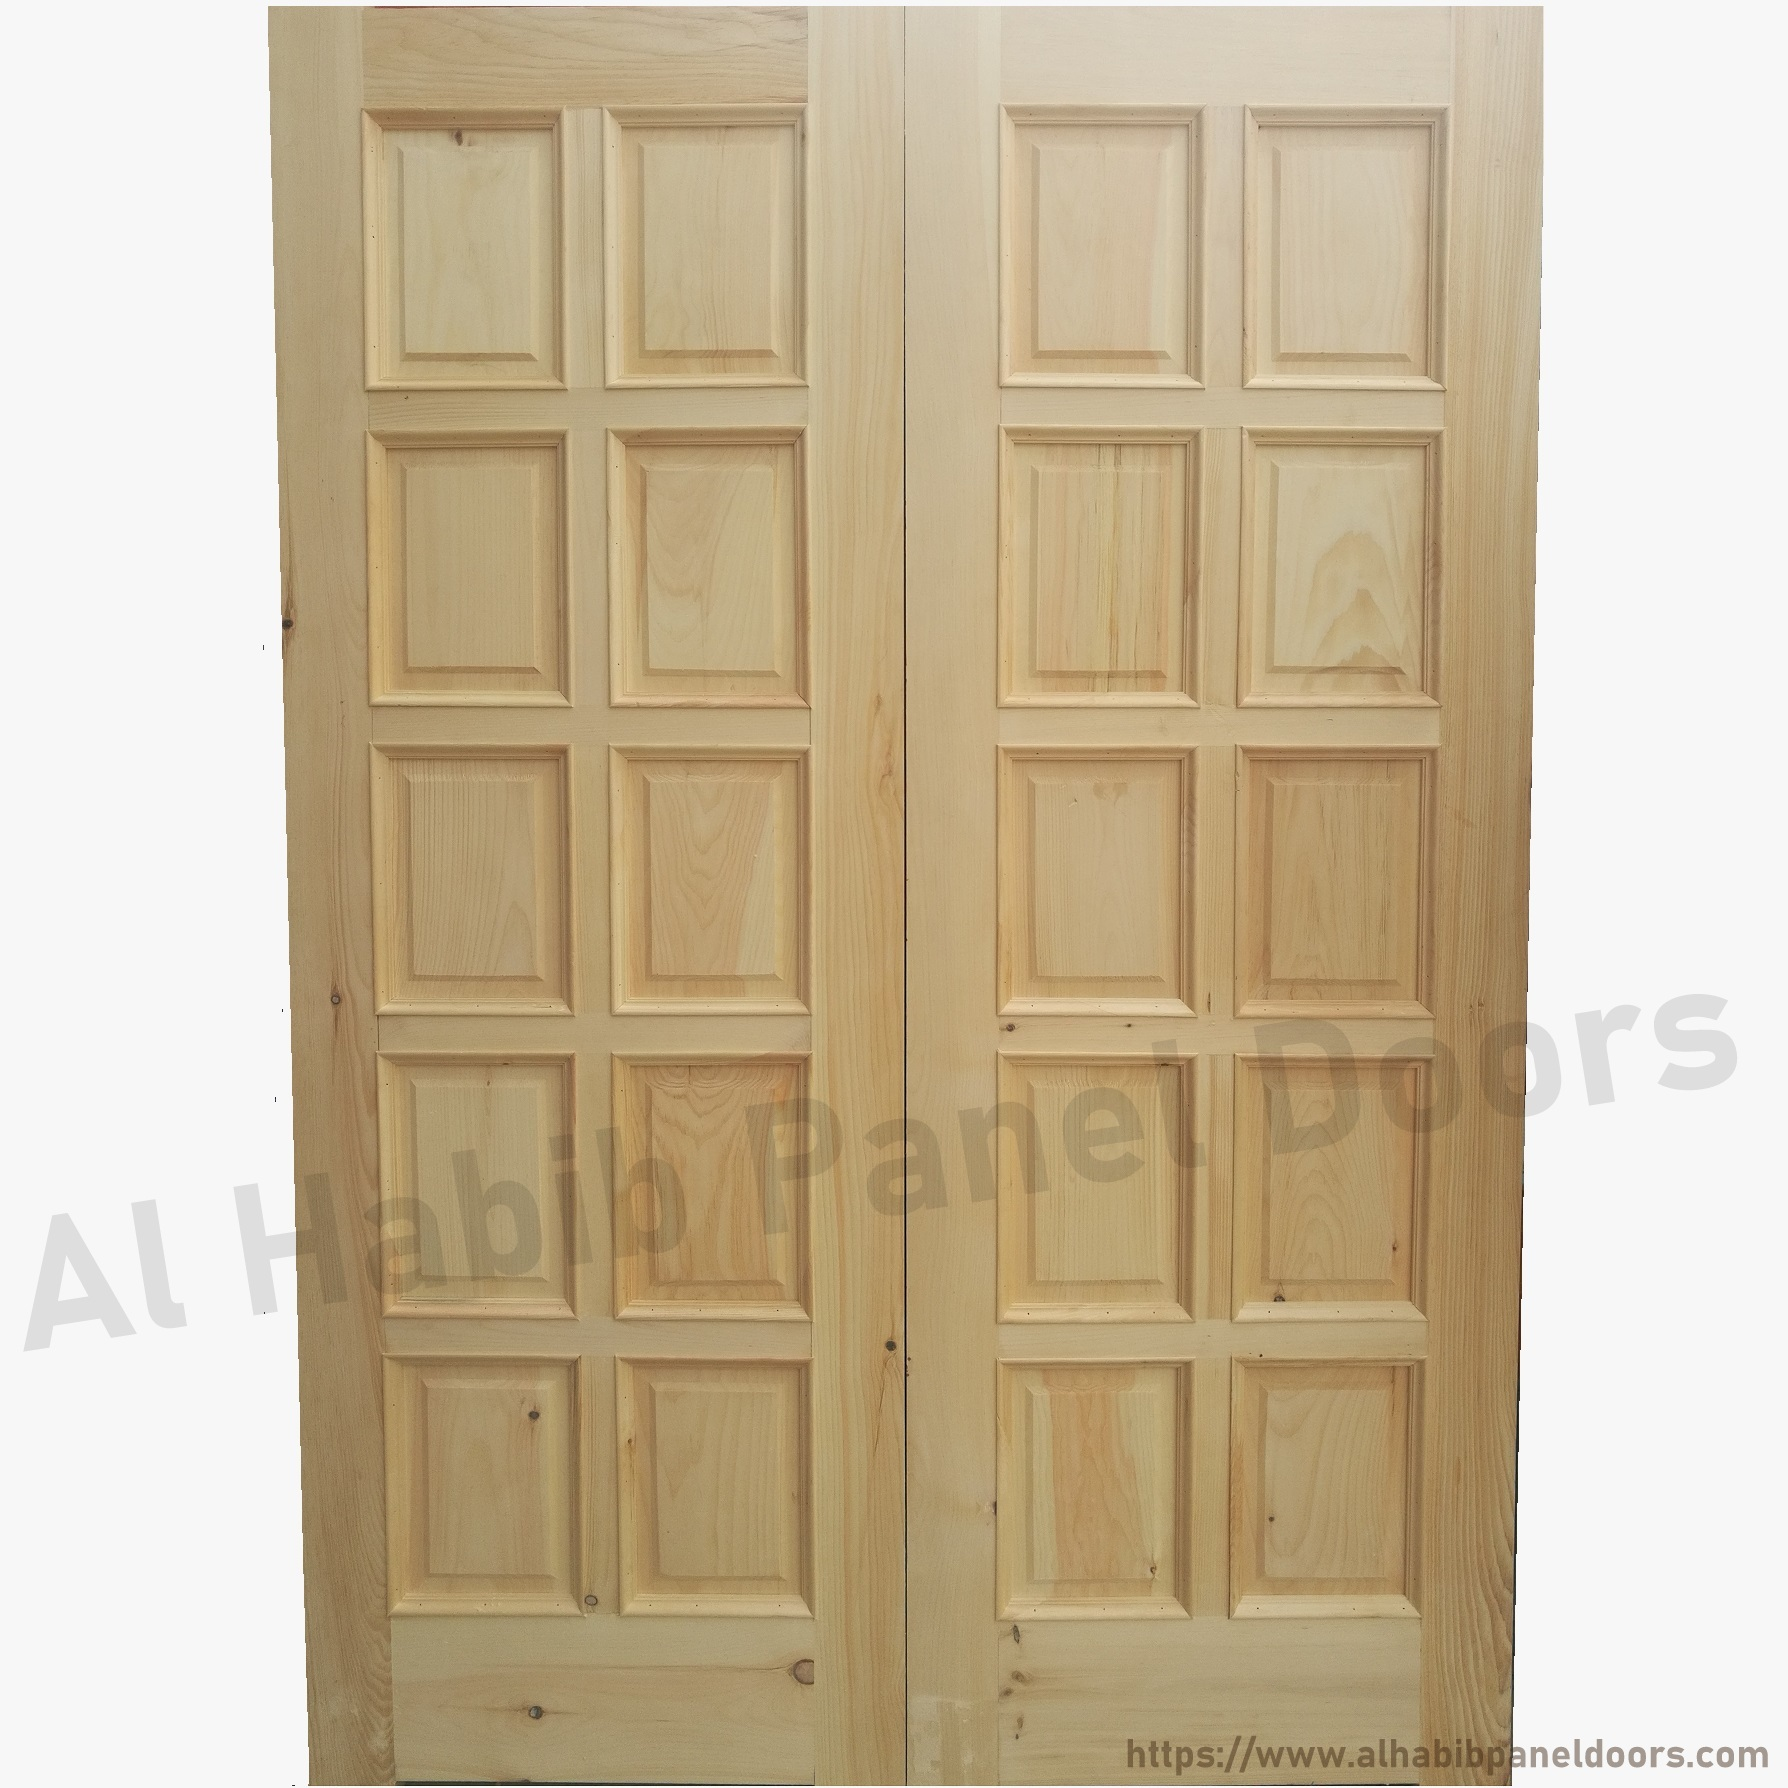 Diyar Solid Wood Main Double Door Hpd412 - Main Doors - Al Habib ...